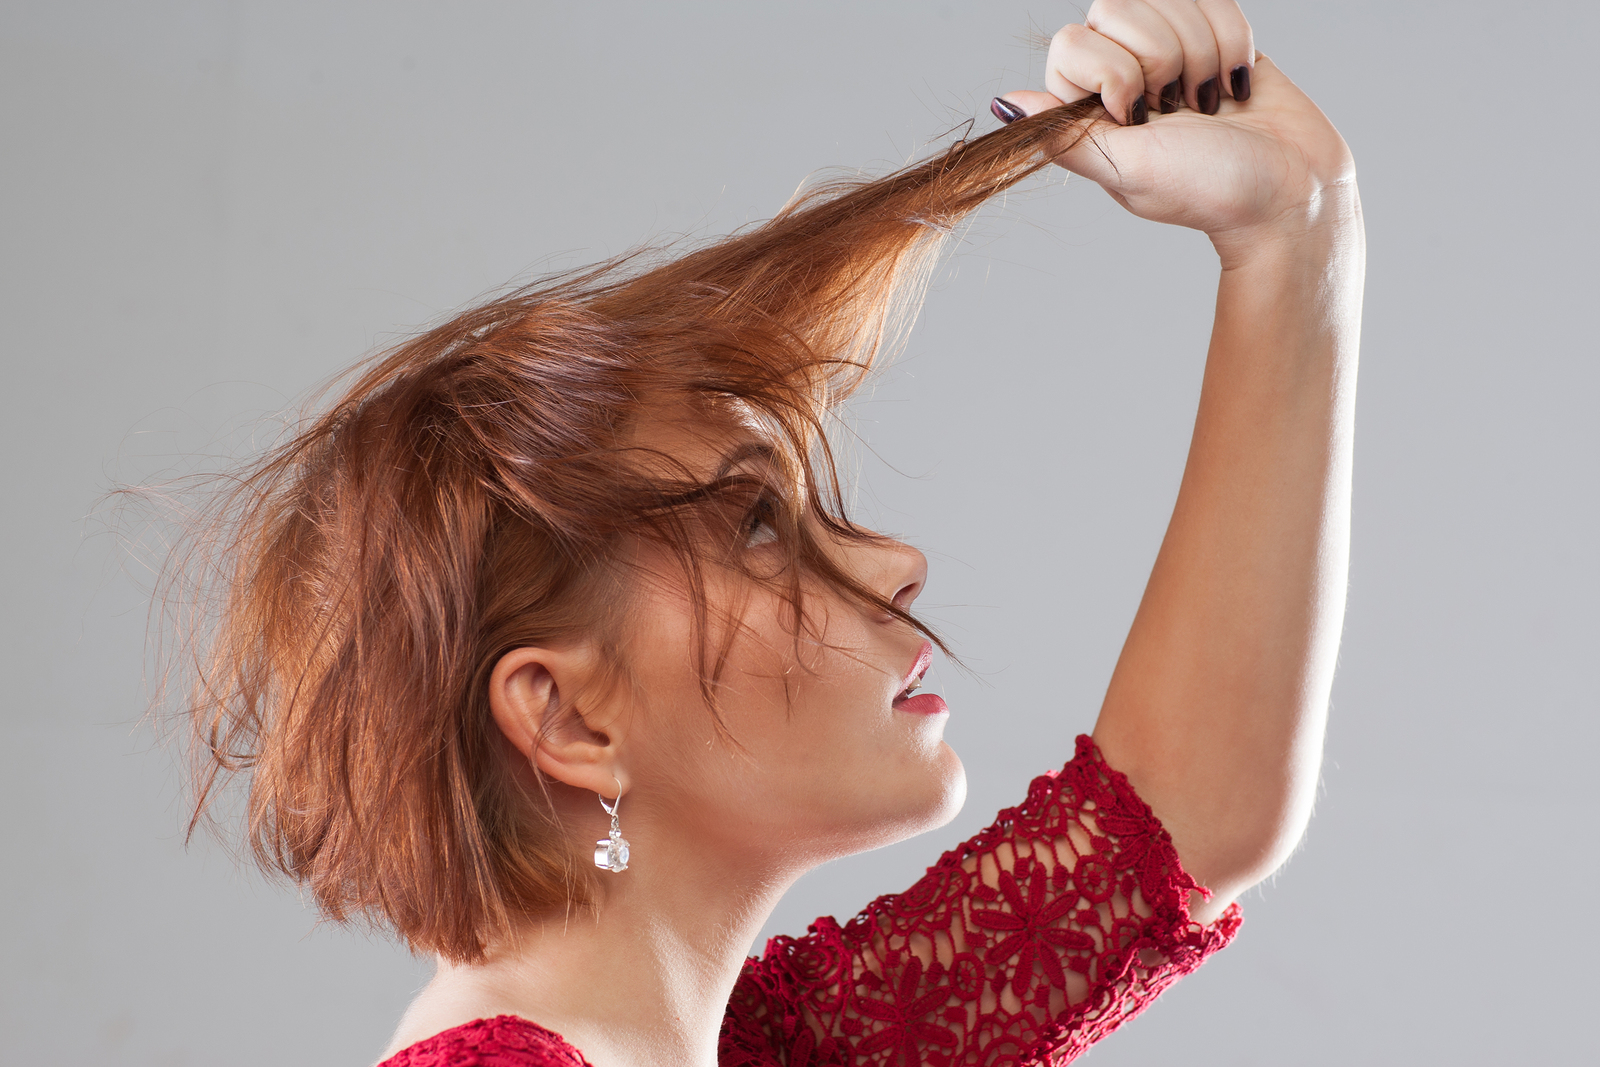 Do You Know How to Tell If Your Hair is Damaged?